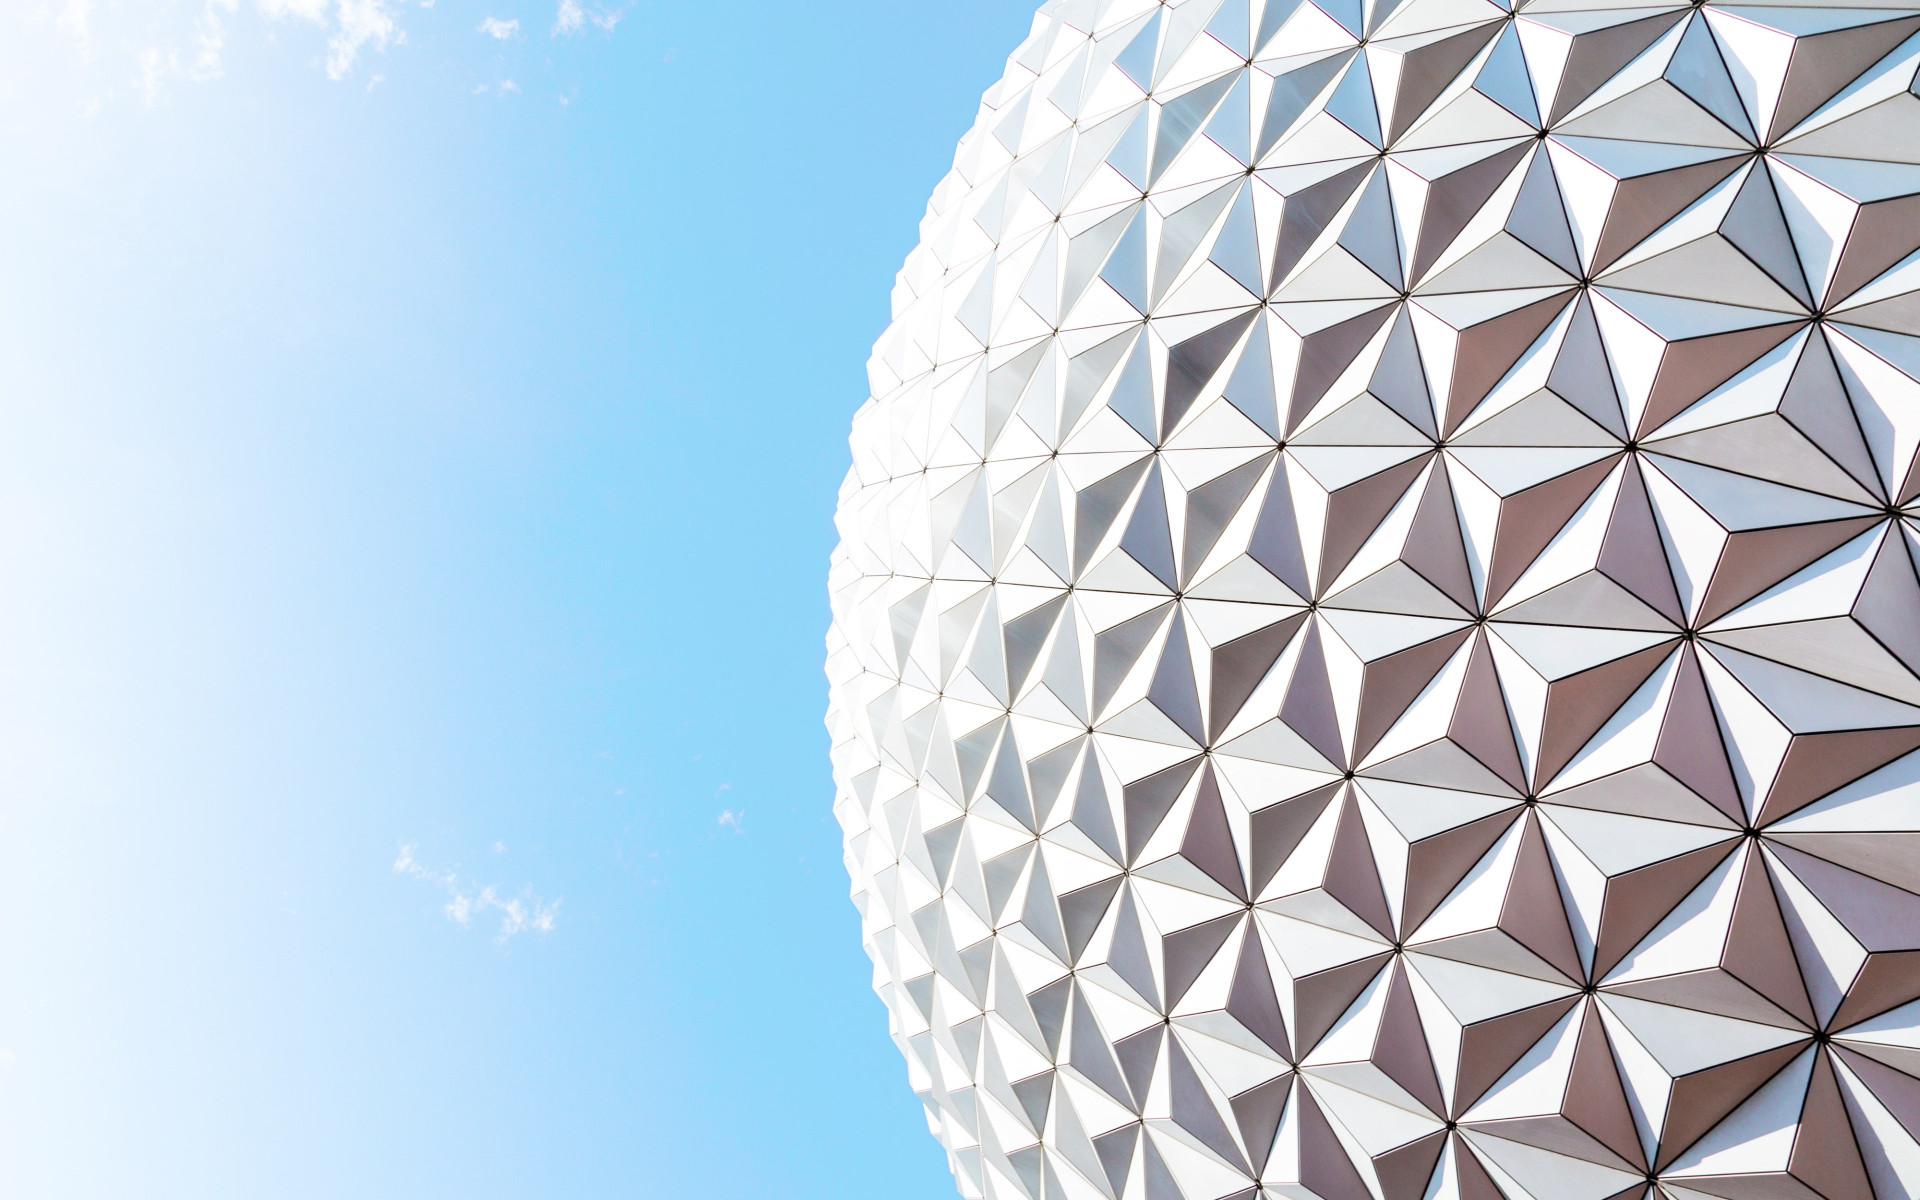 Urban Geometry, Disney World, USA wallpaper 1920x1200